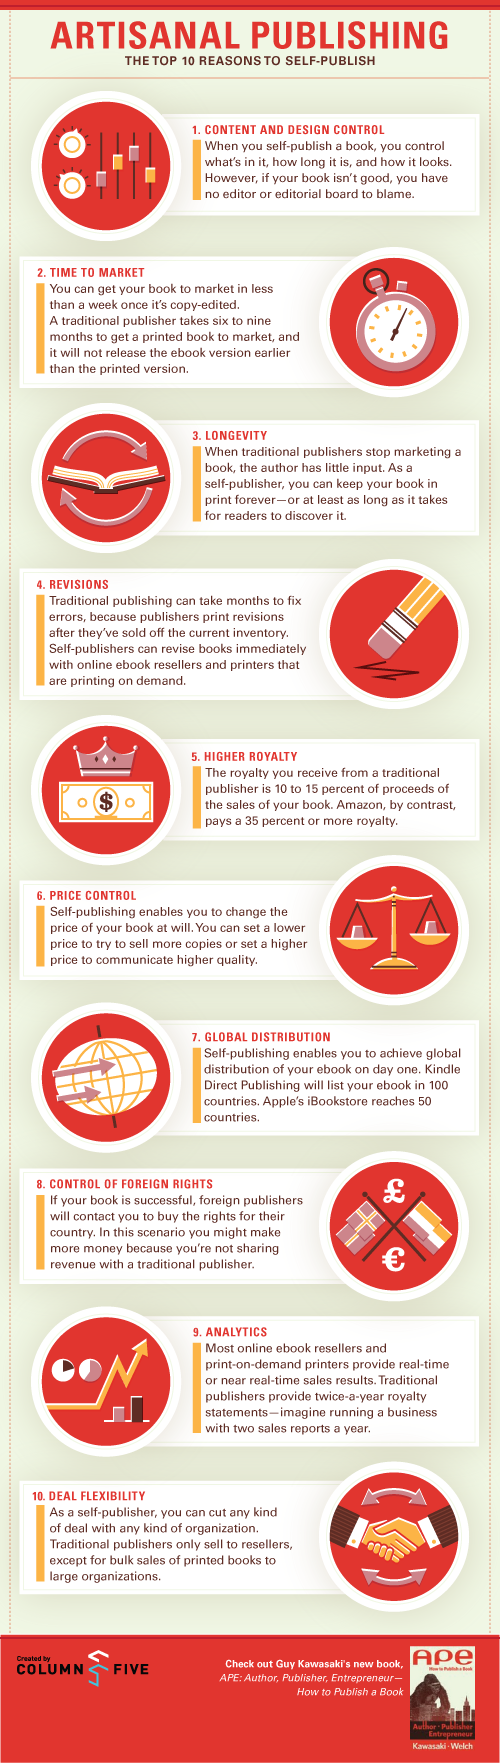 Top-10-reasons-to-self-publish